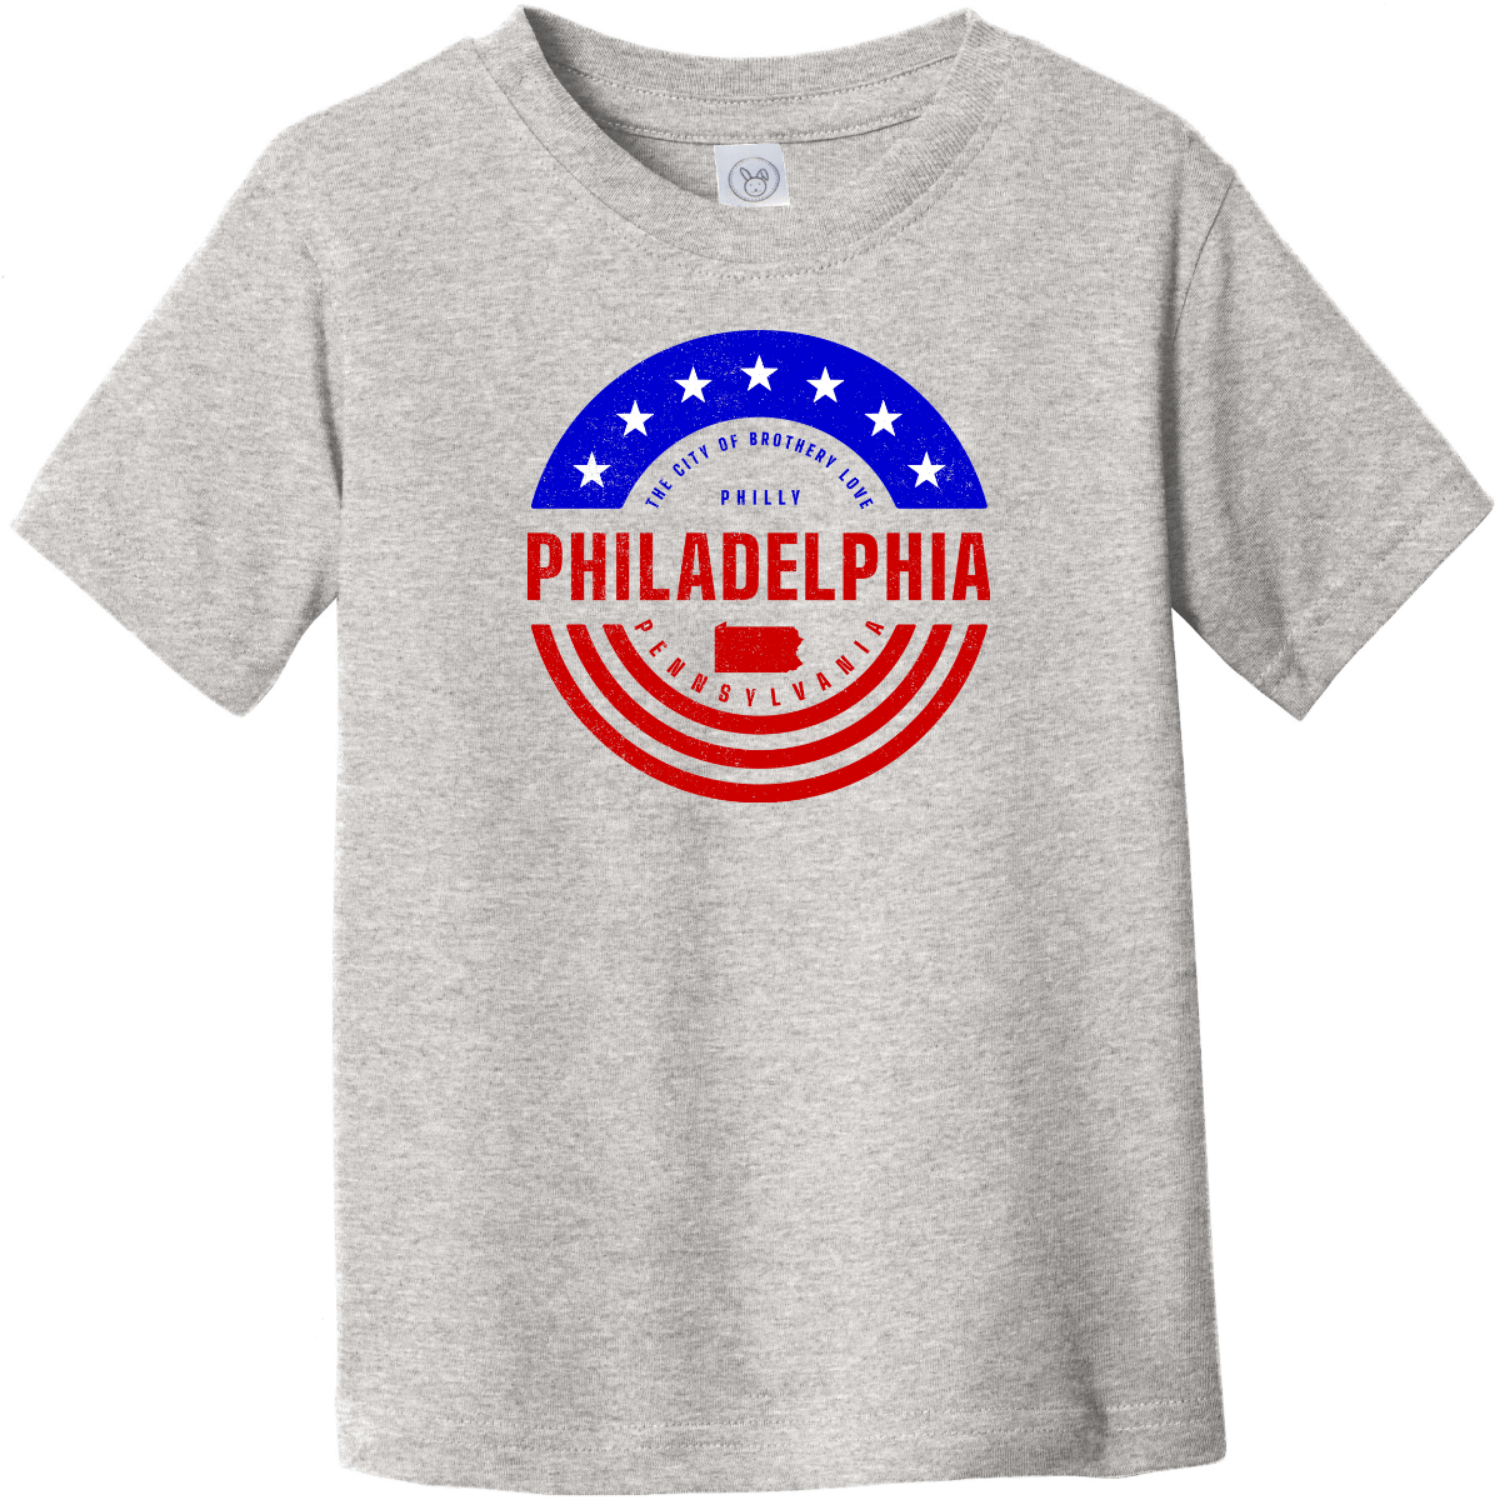 Philadelphia Pennsylvania Patriotic Toddler T-Shirt Heather Rabbit Skins Toddler Fine Jersey Tee RS3321